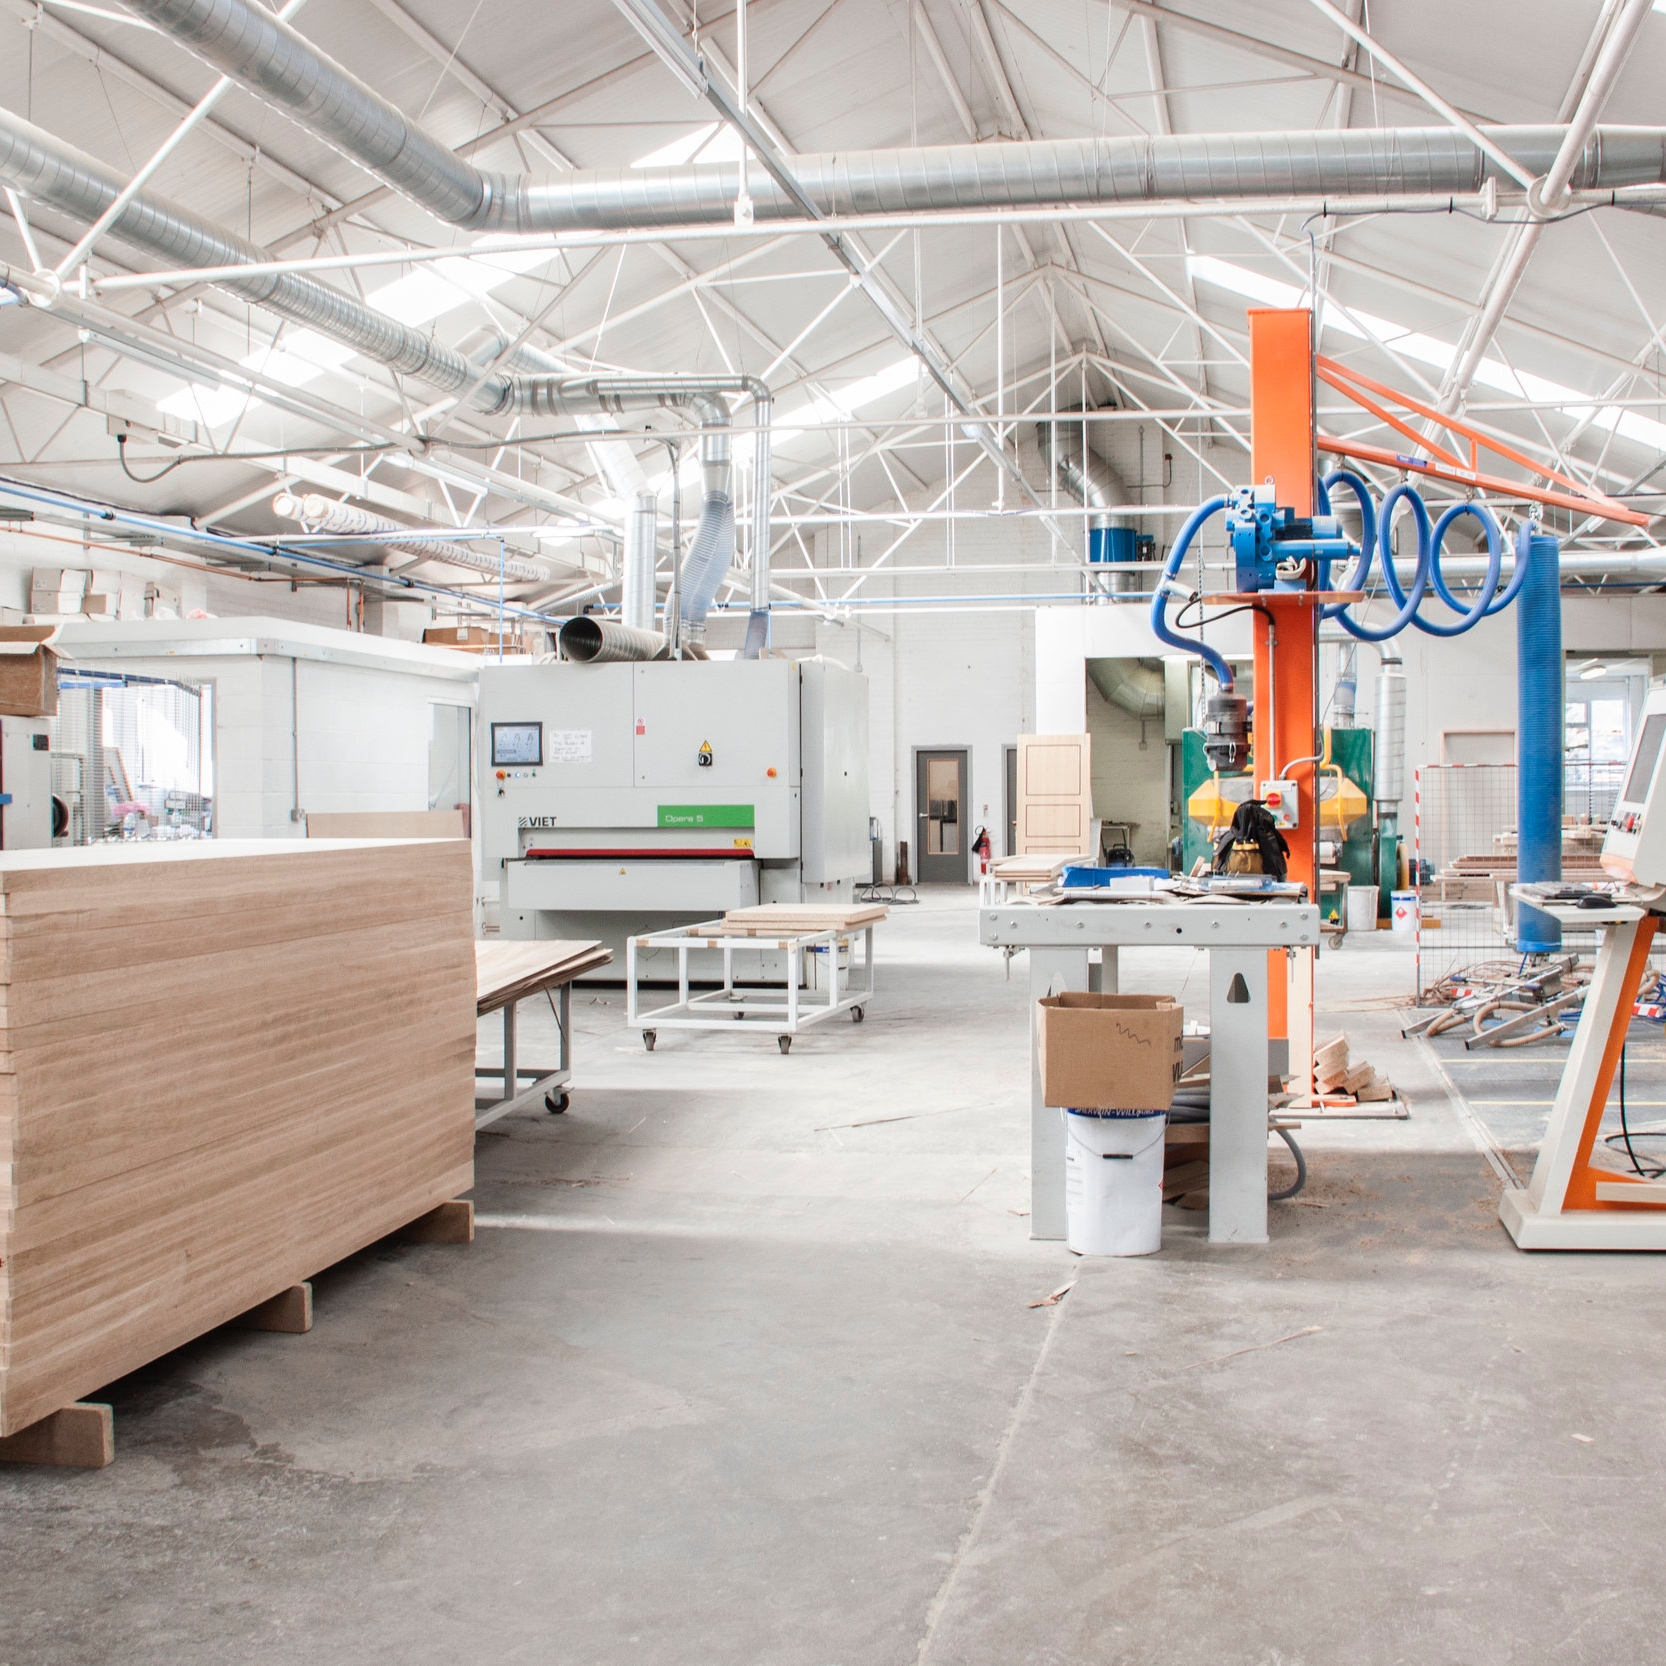 A Look Inside Our Factory - February 2019